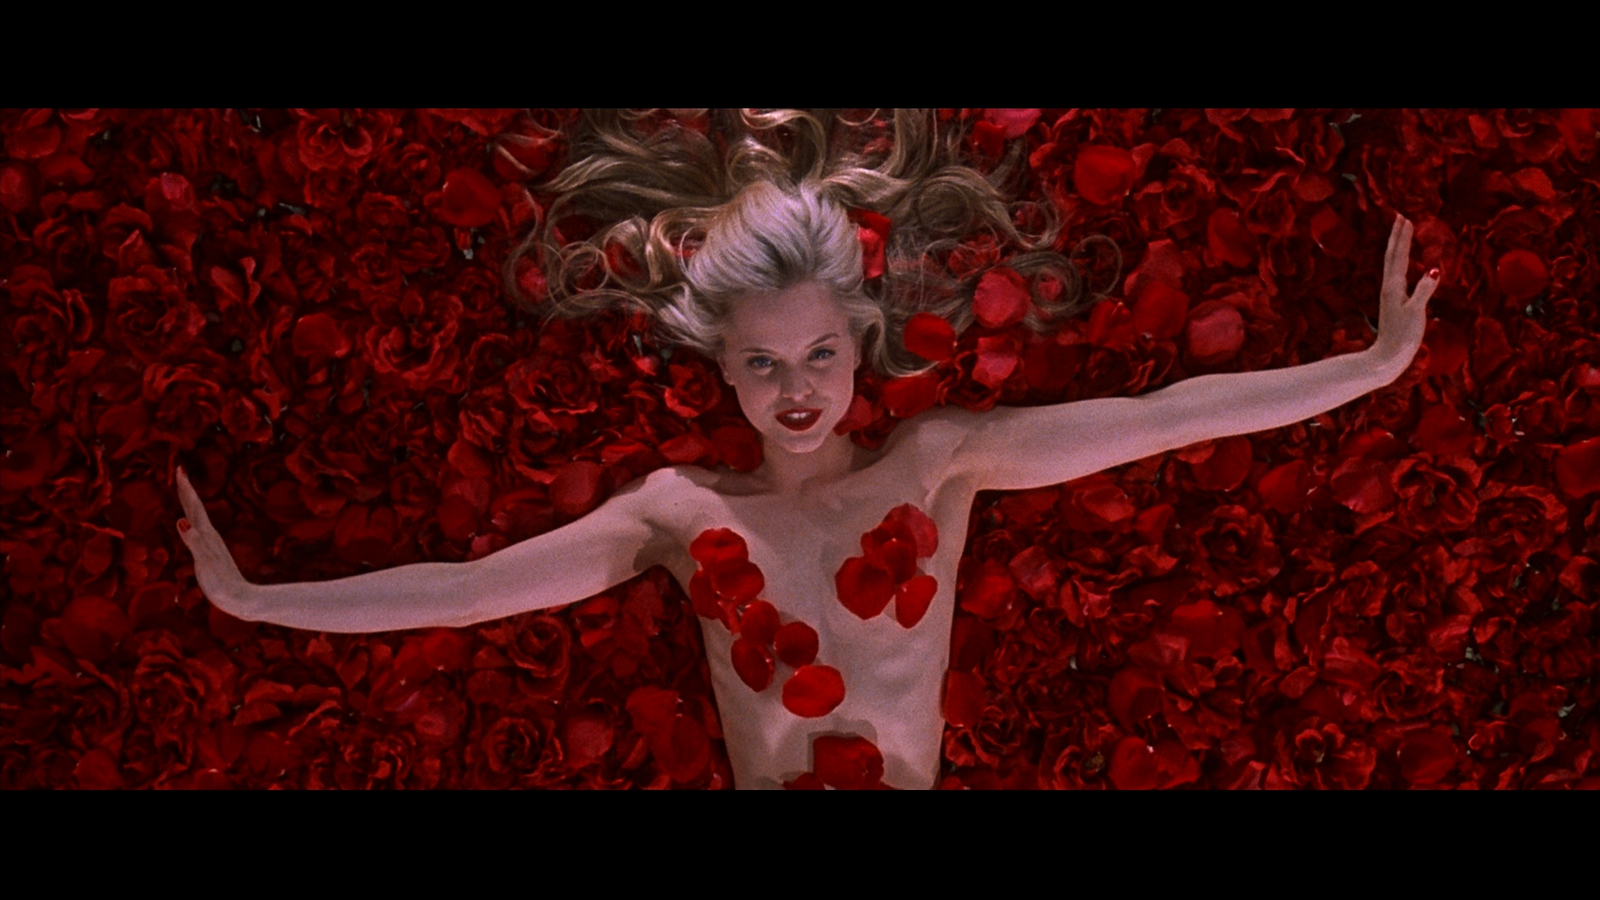 a review of the film american beauty American beauty is a 1999 american drama film directed by sam mendes and written by alan ball kevin spacey stars as lester burnham.